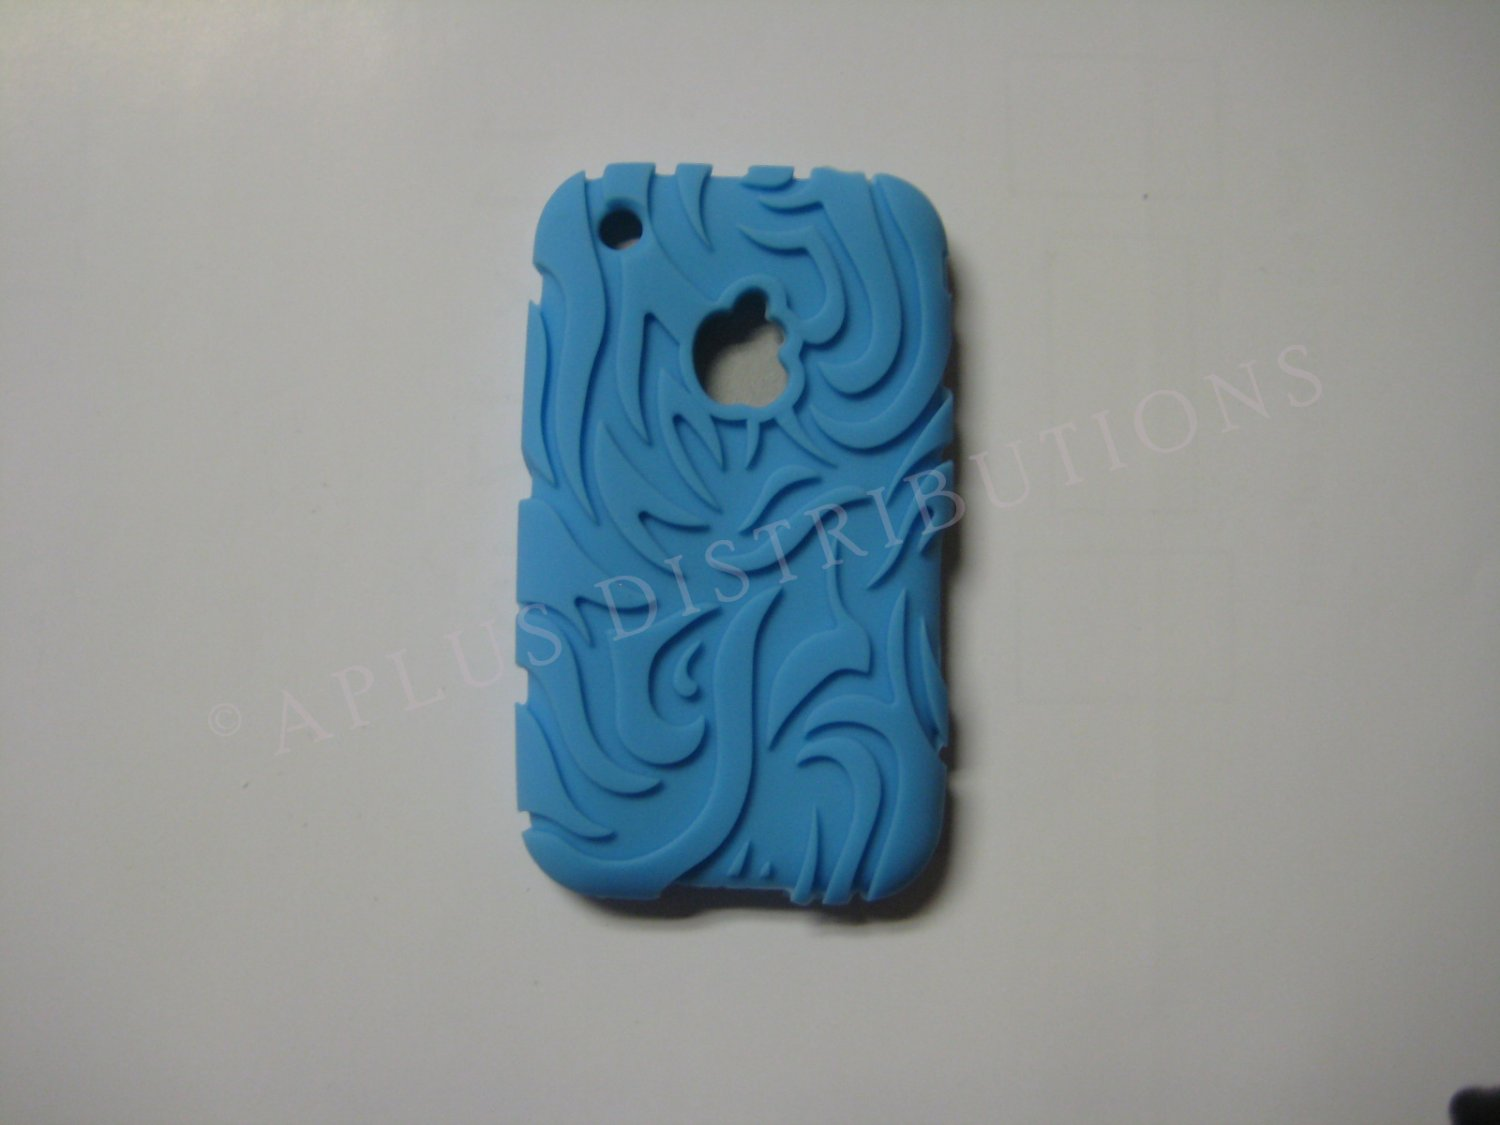 New Tribal/Tattoo Design Silicone For Iphone 3G/3GS - LIGHT BLUE